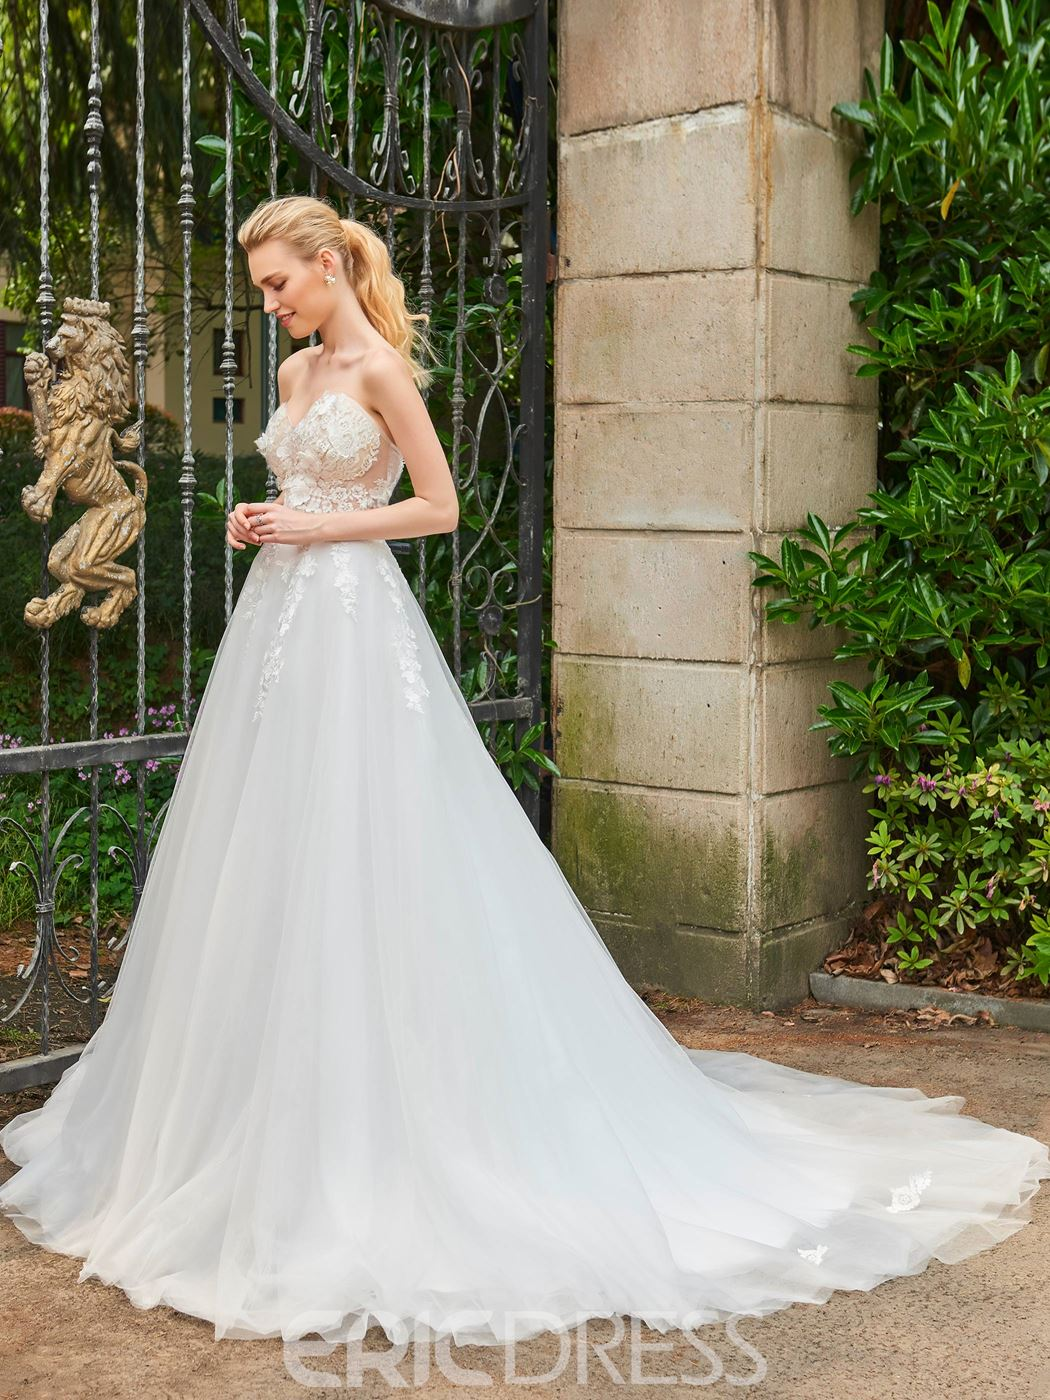 Ericdress Sweetheart Appliques Cathedral Train Ball Gown Garden Wedding Dress